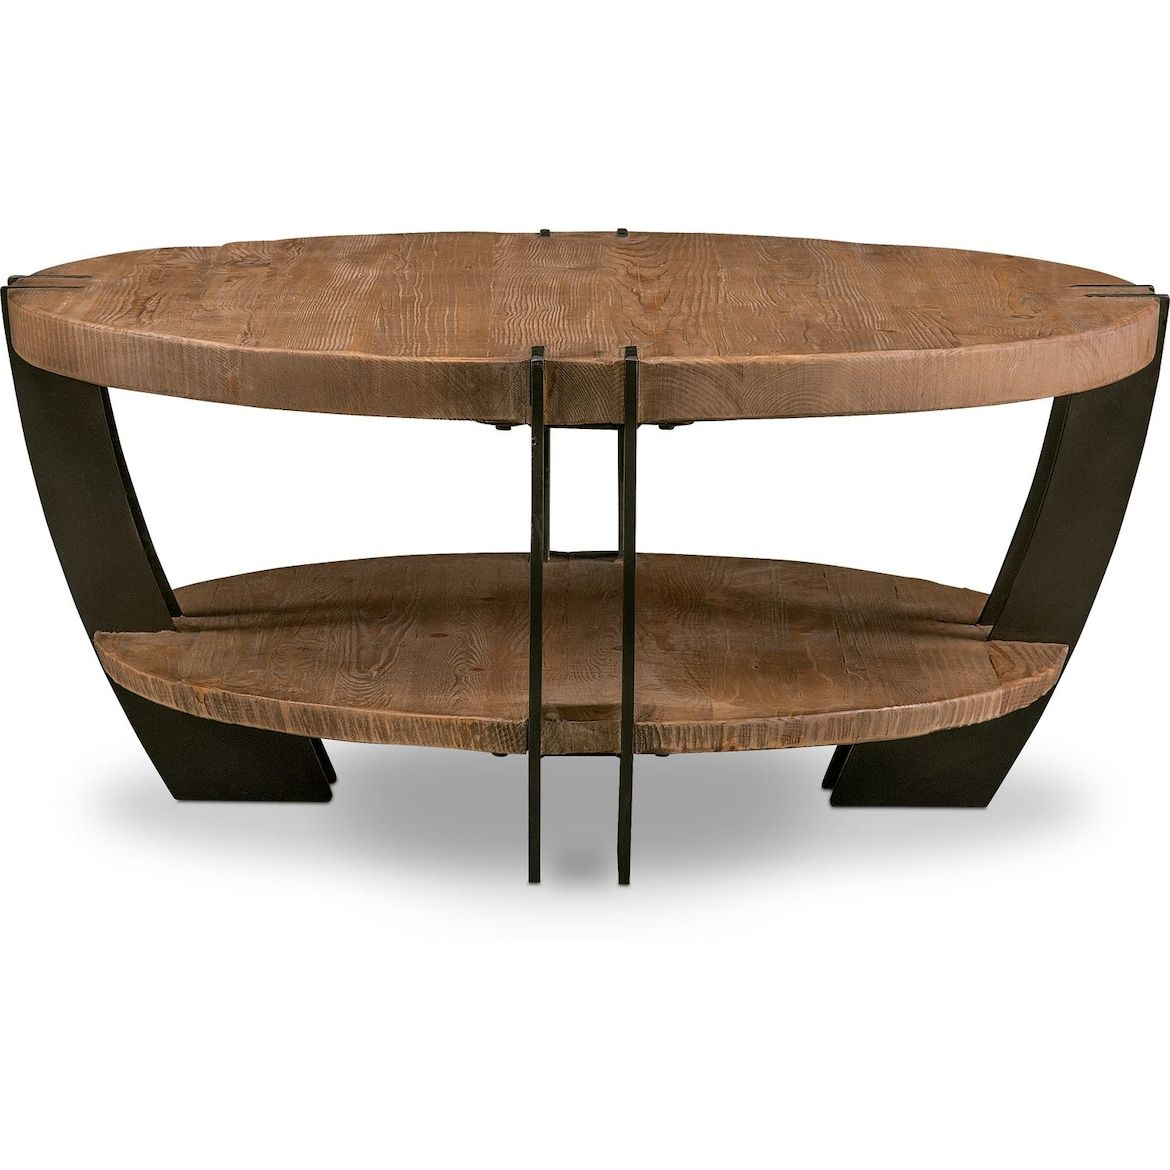 Wessex Coffee Table City Furniture Table Value City Furniture